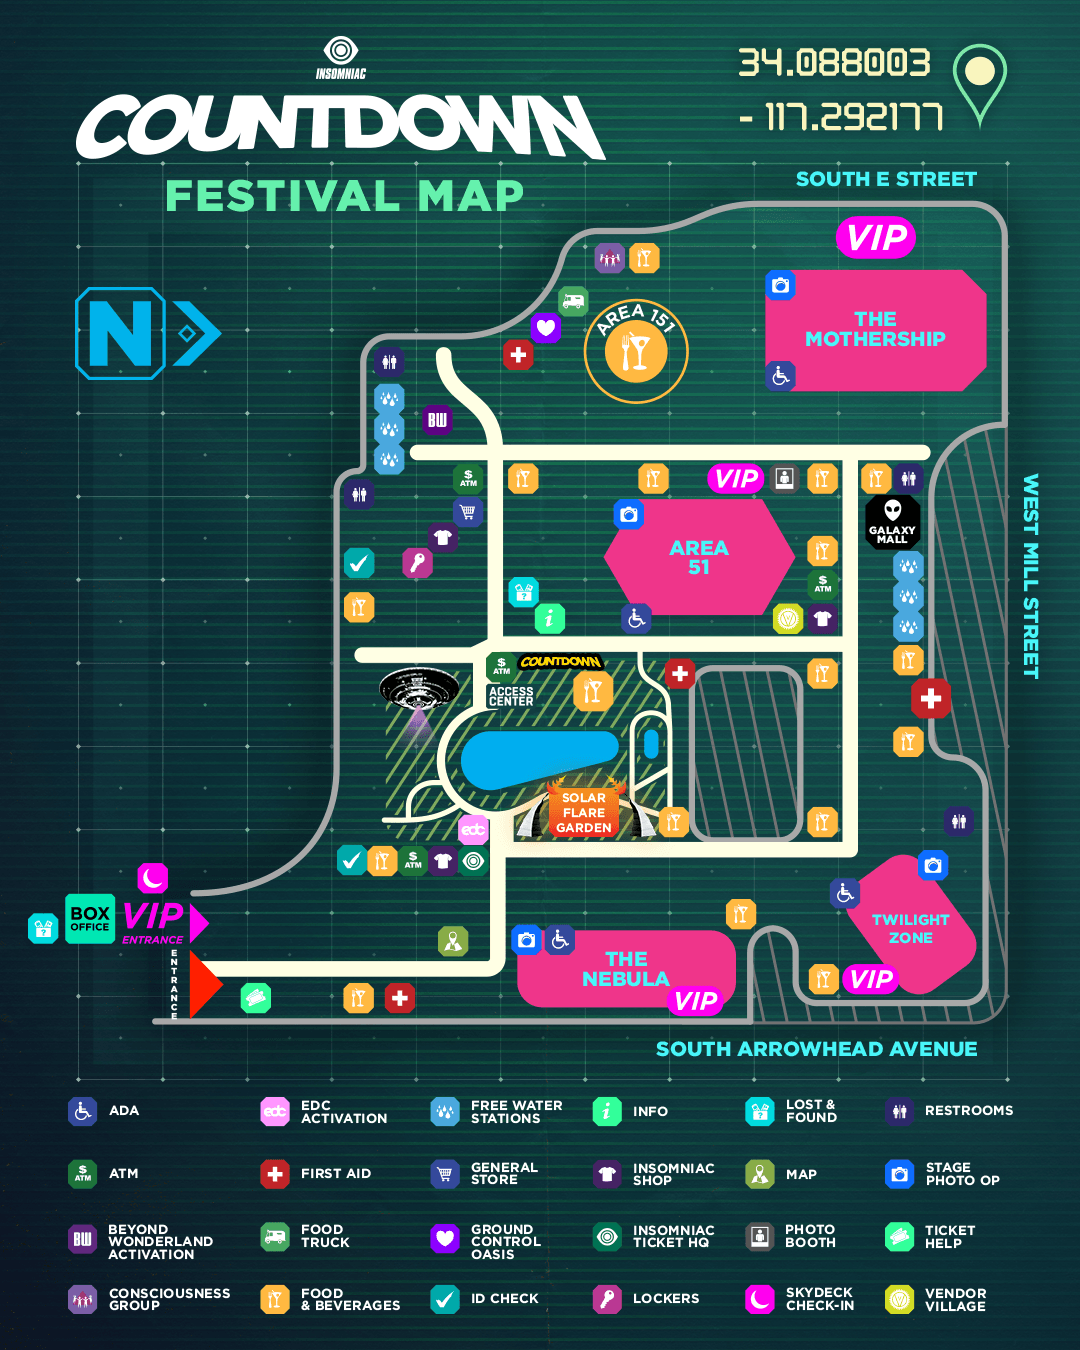 Countdown 2019 festival map